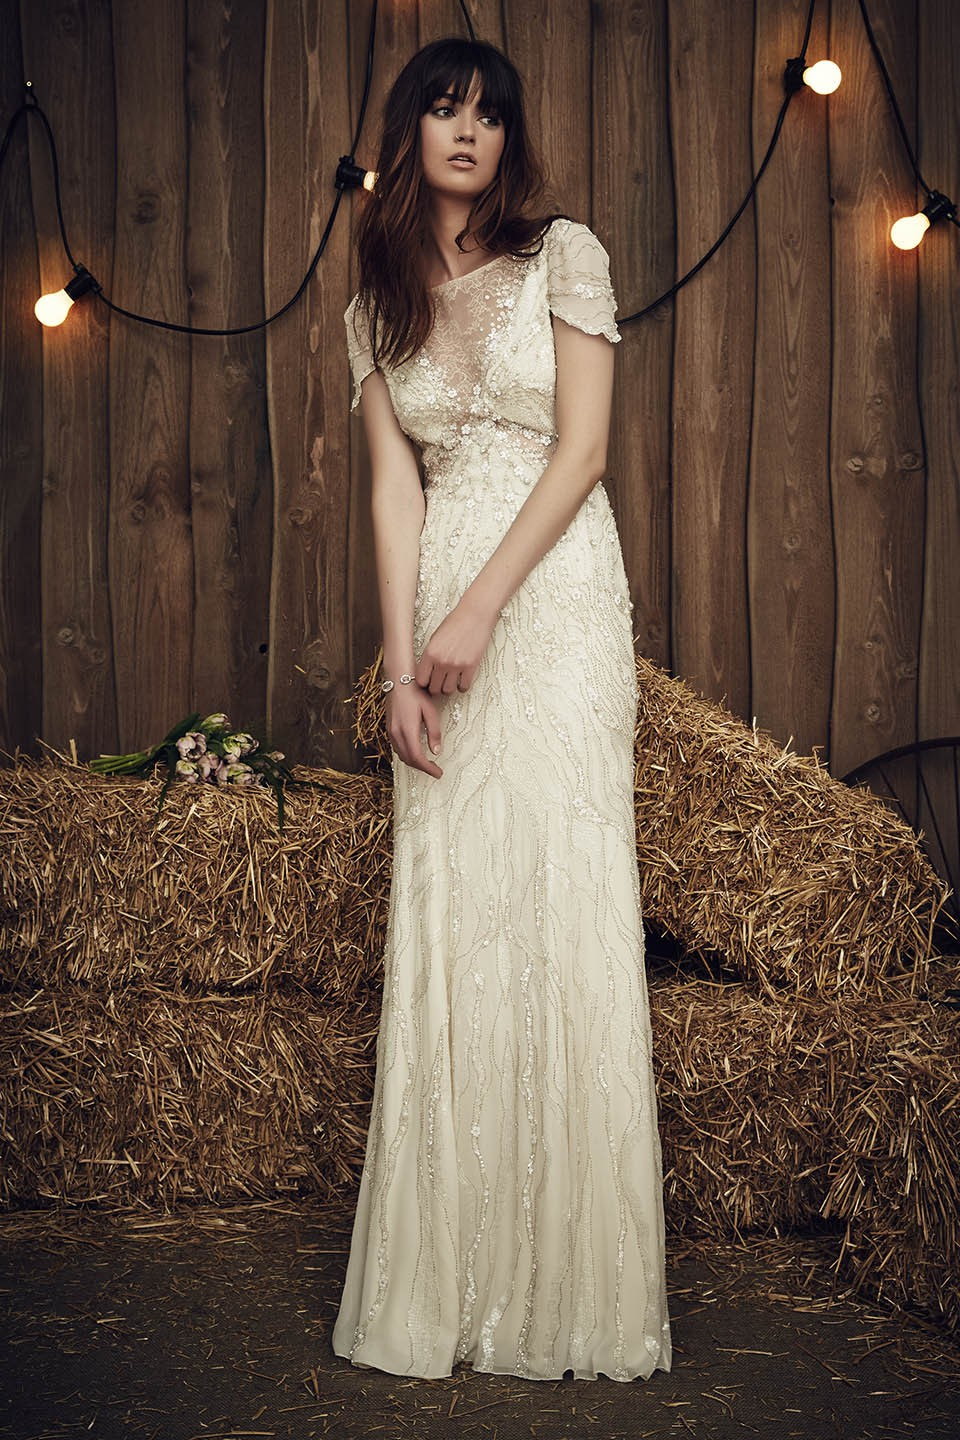 Jenny Packham Nashville Sample Wedding Dress On Sale 50 Off